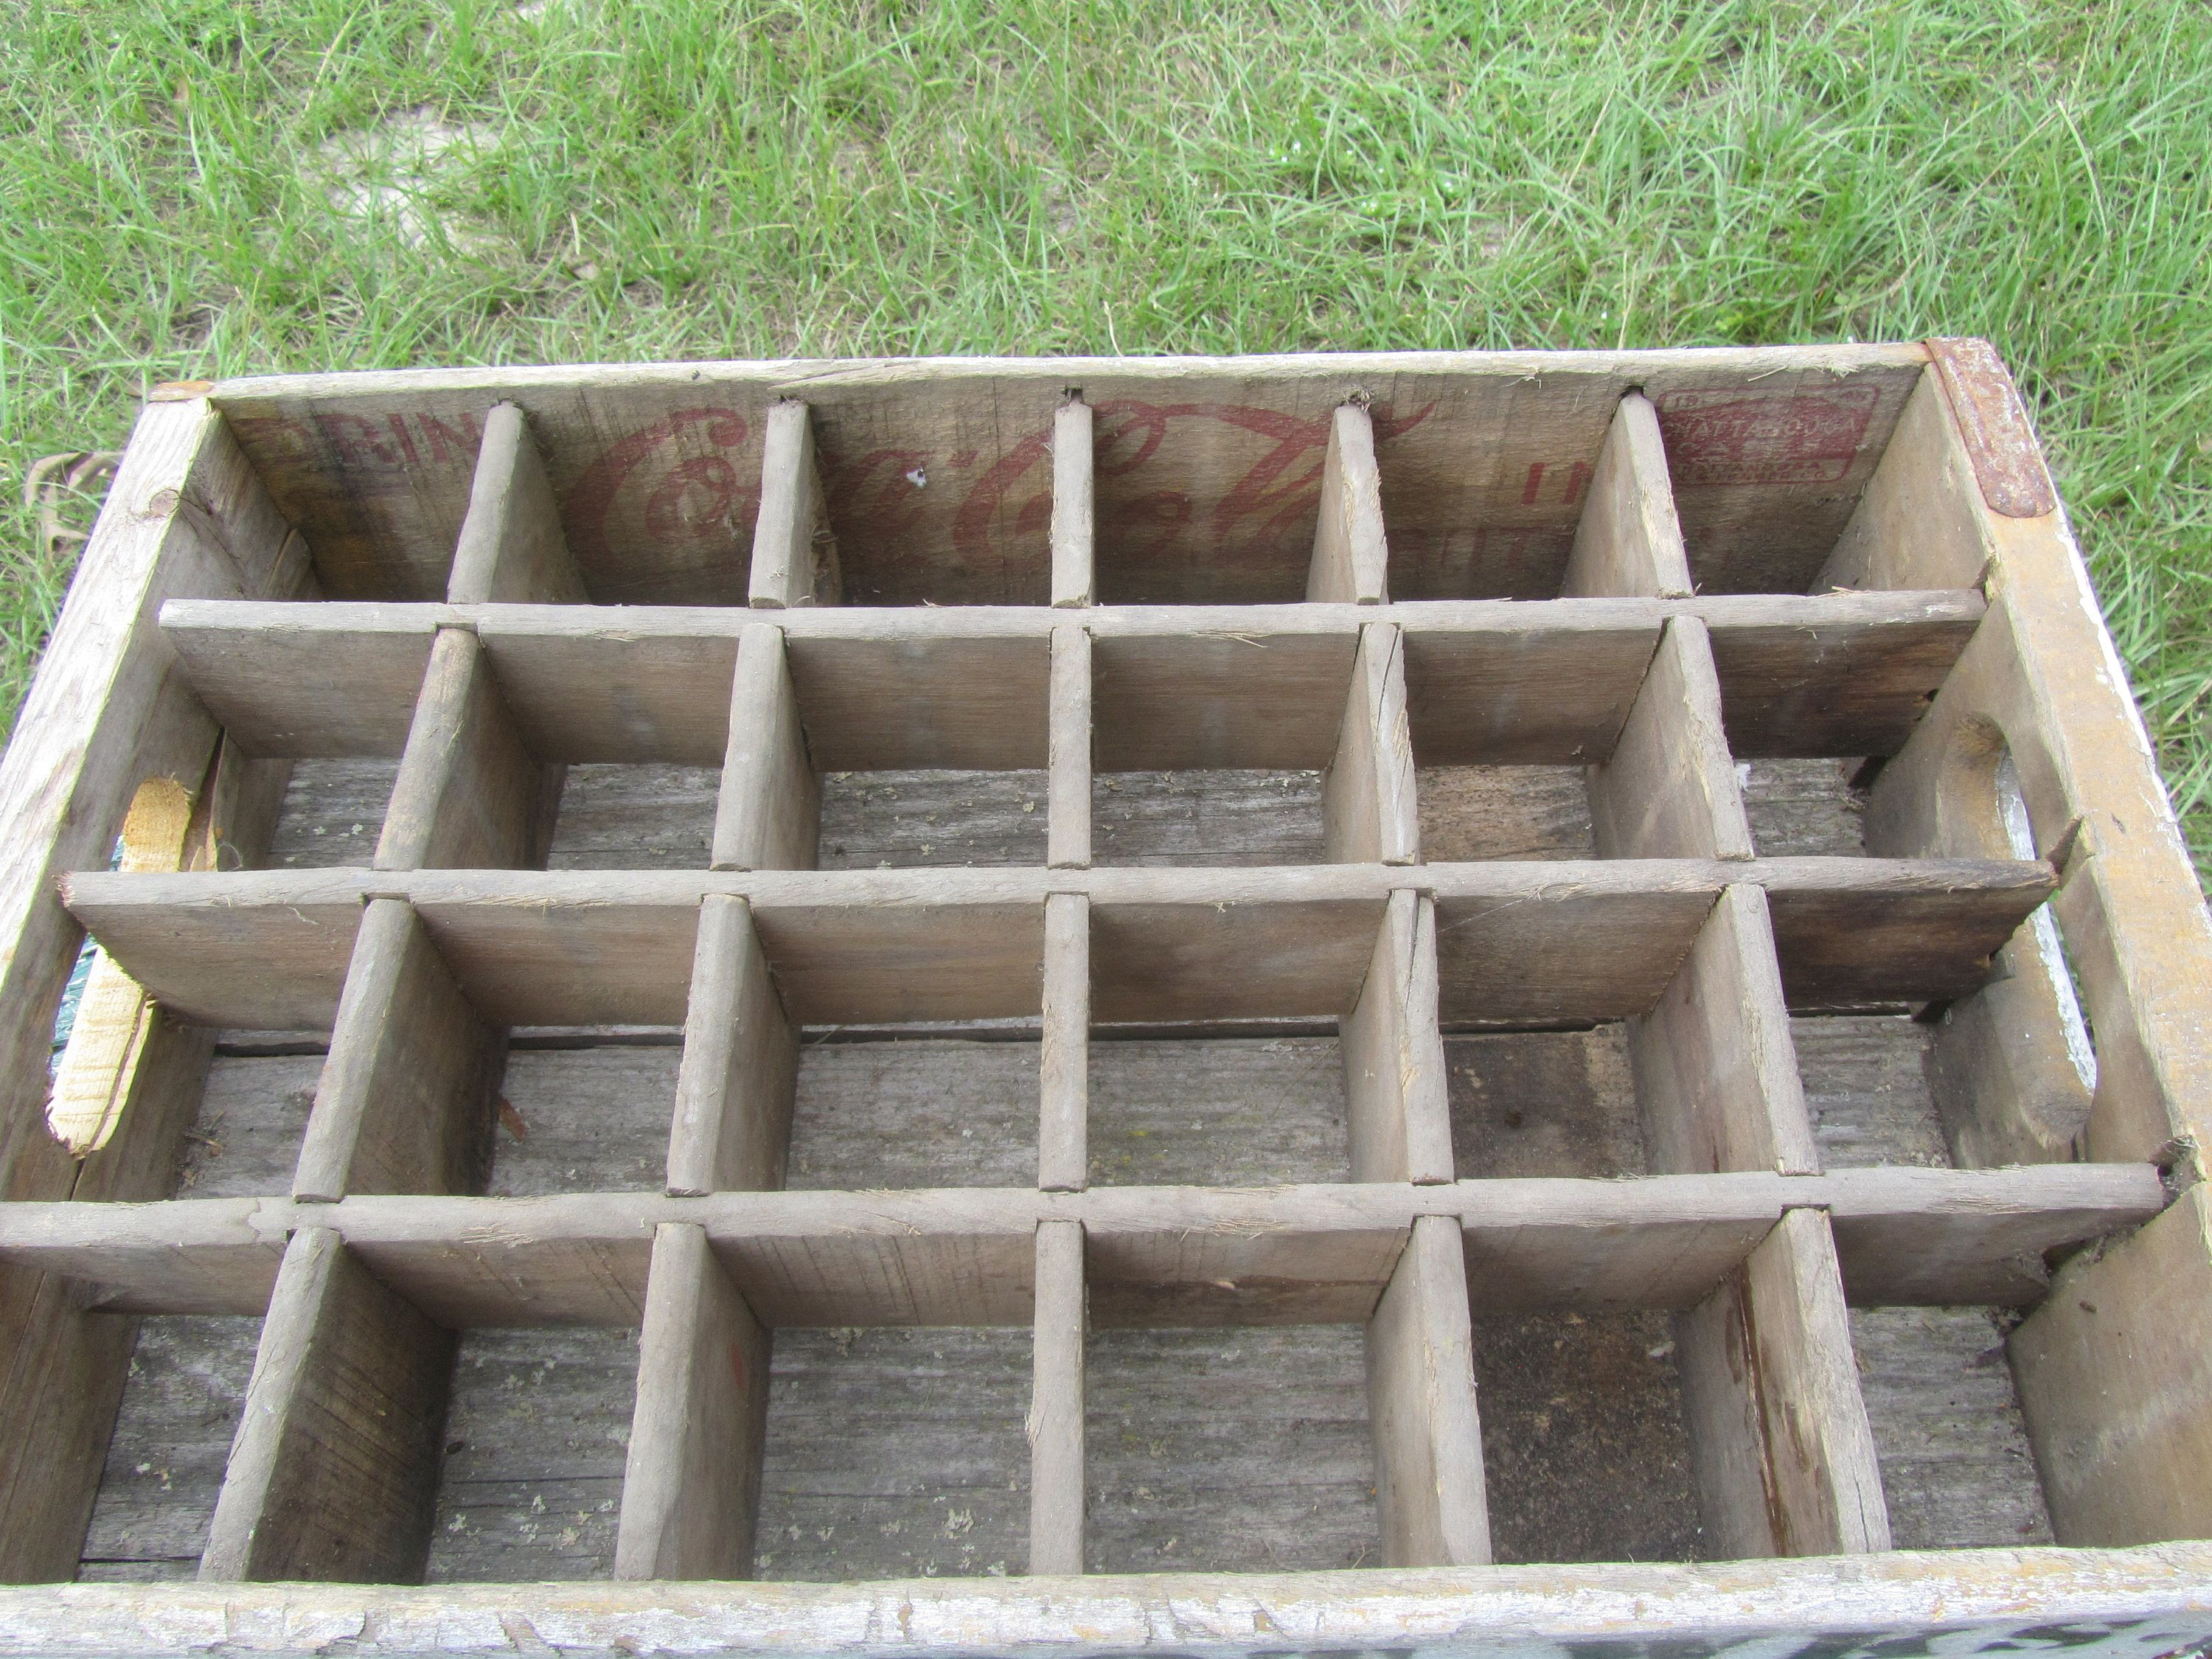 Coke Crate, Sp Gr Bot Wks, Spring Grove Mn Crate,